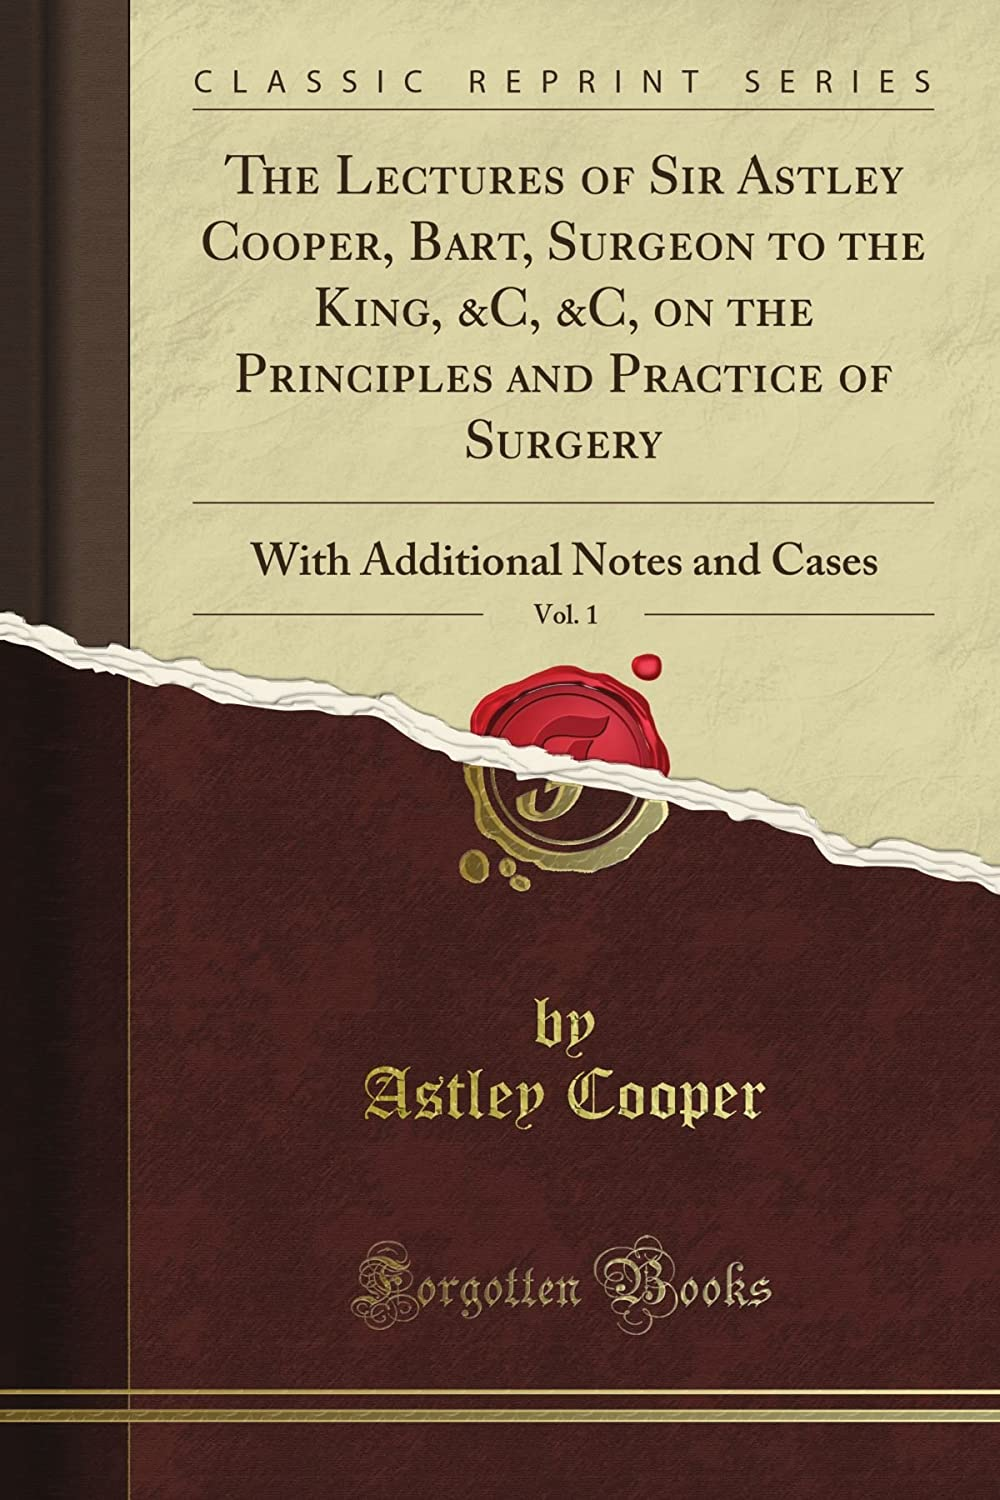 The Lectures of Sir Astley Cooper, Bart, Surgeon to the King, &C, &C, on the Principles and Practice of Surgery: With Additional Notes and Cases, Vol. 1 (Classic Reprint)